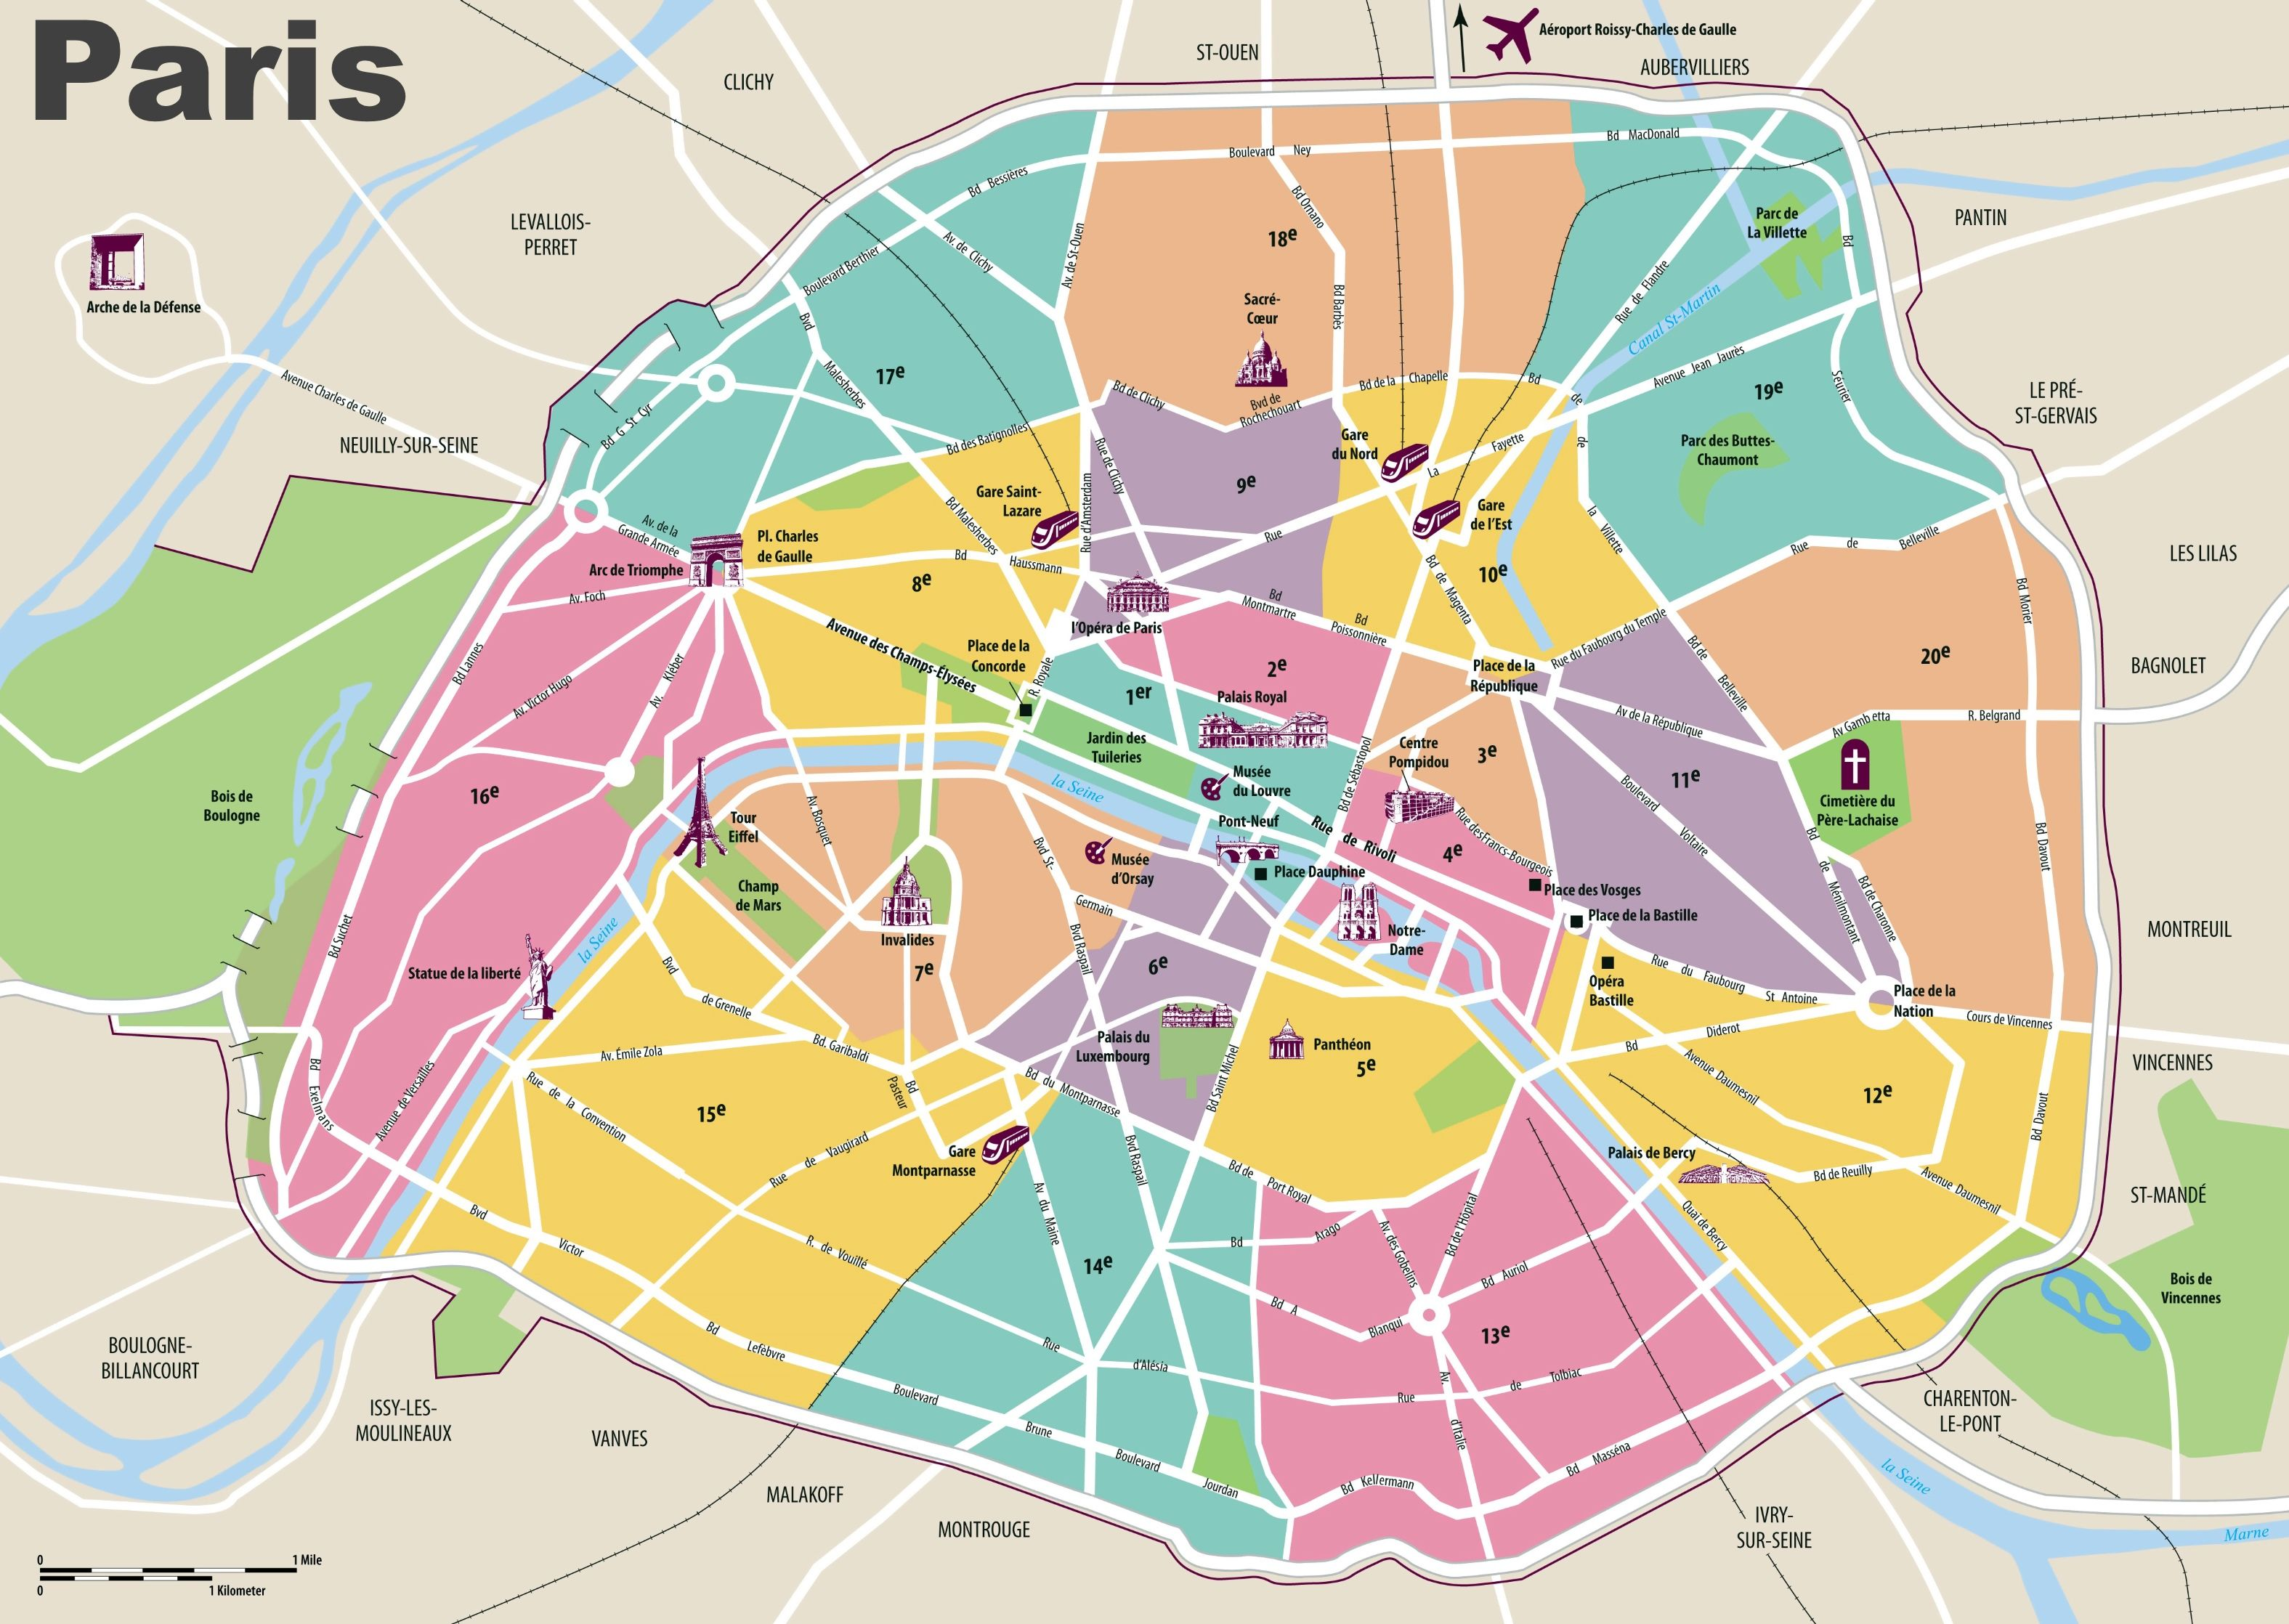 Map Of France Tourist Attractions.Paris Travel Map With Tourist Attractions And Arrondissements